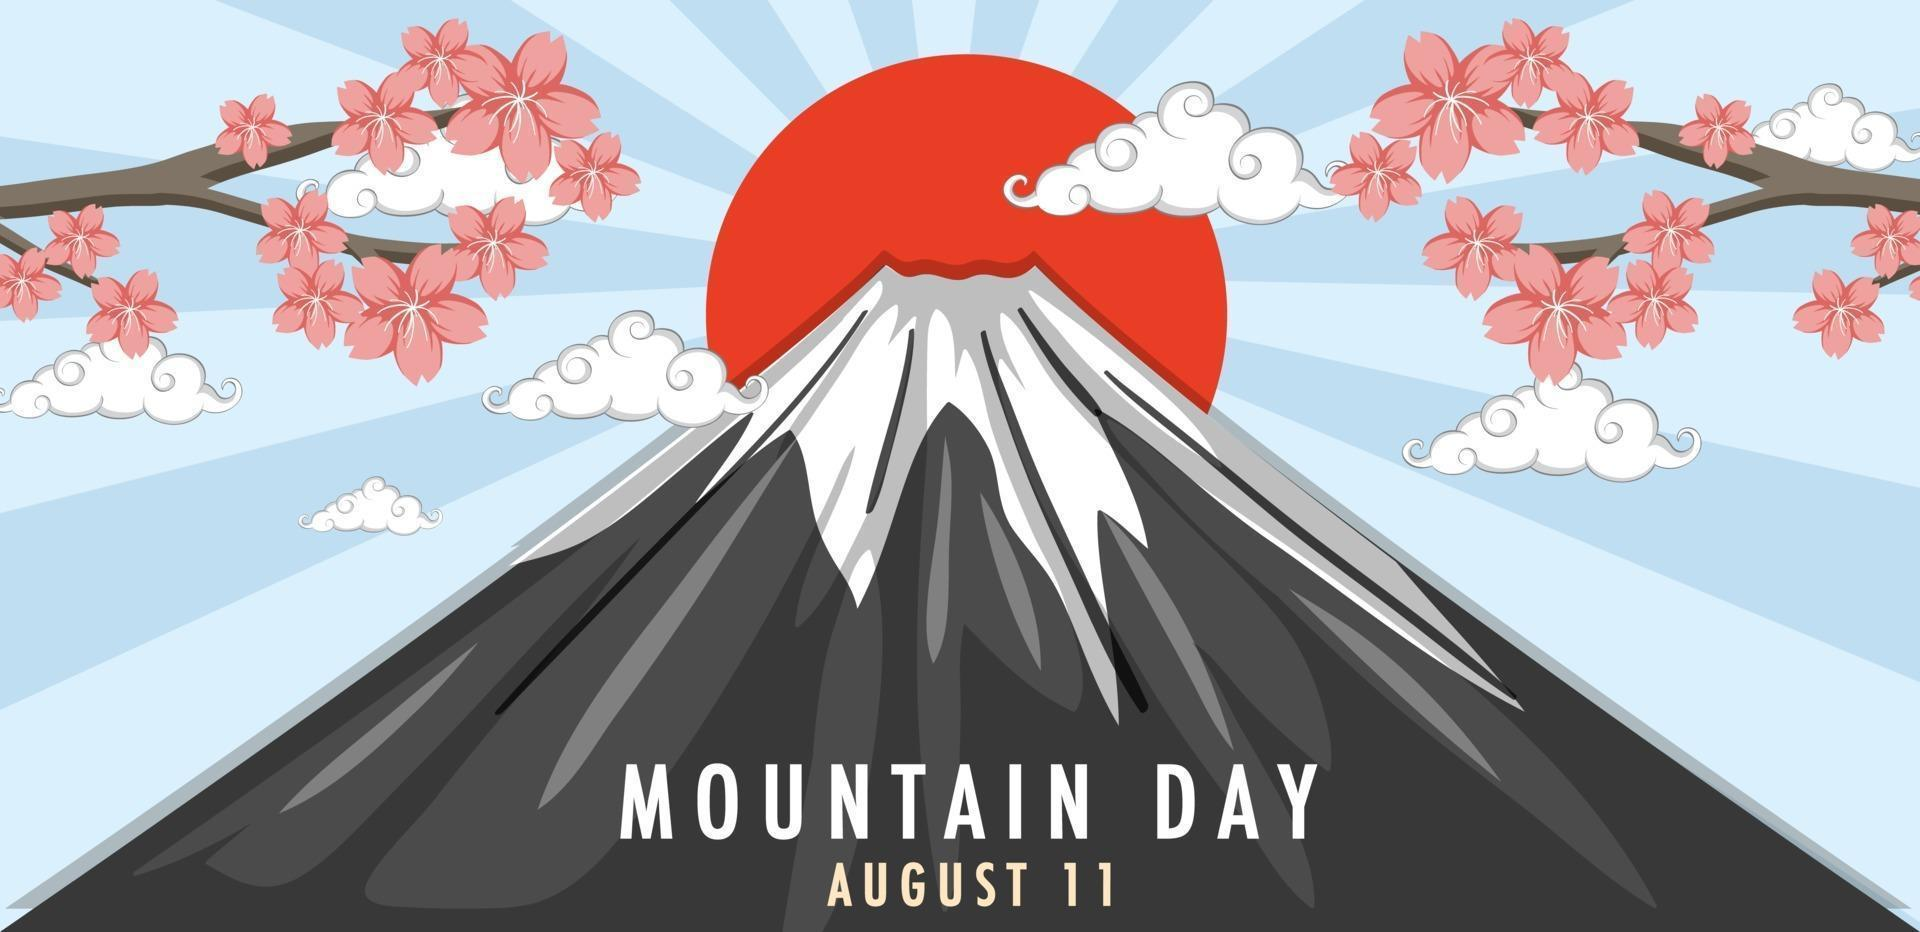 Mountain Day in August 11 banner with Mount Fuji and Sun Rays vector